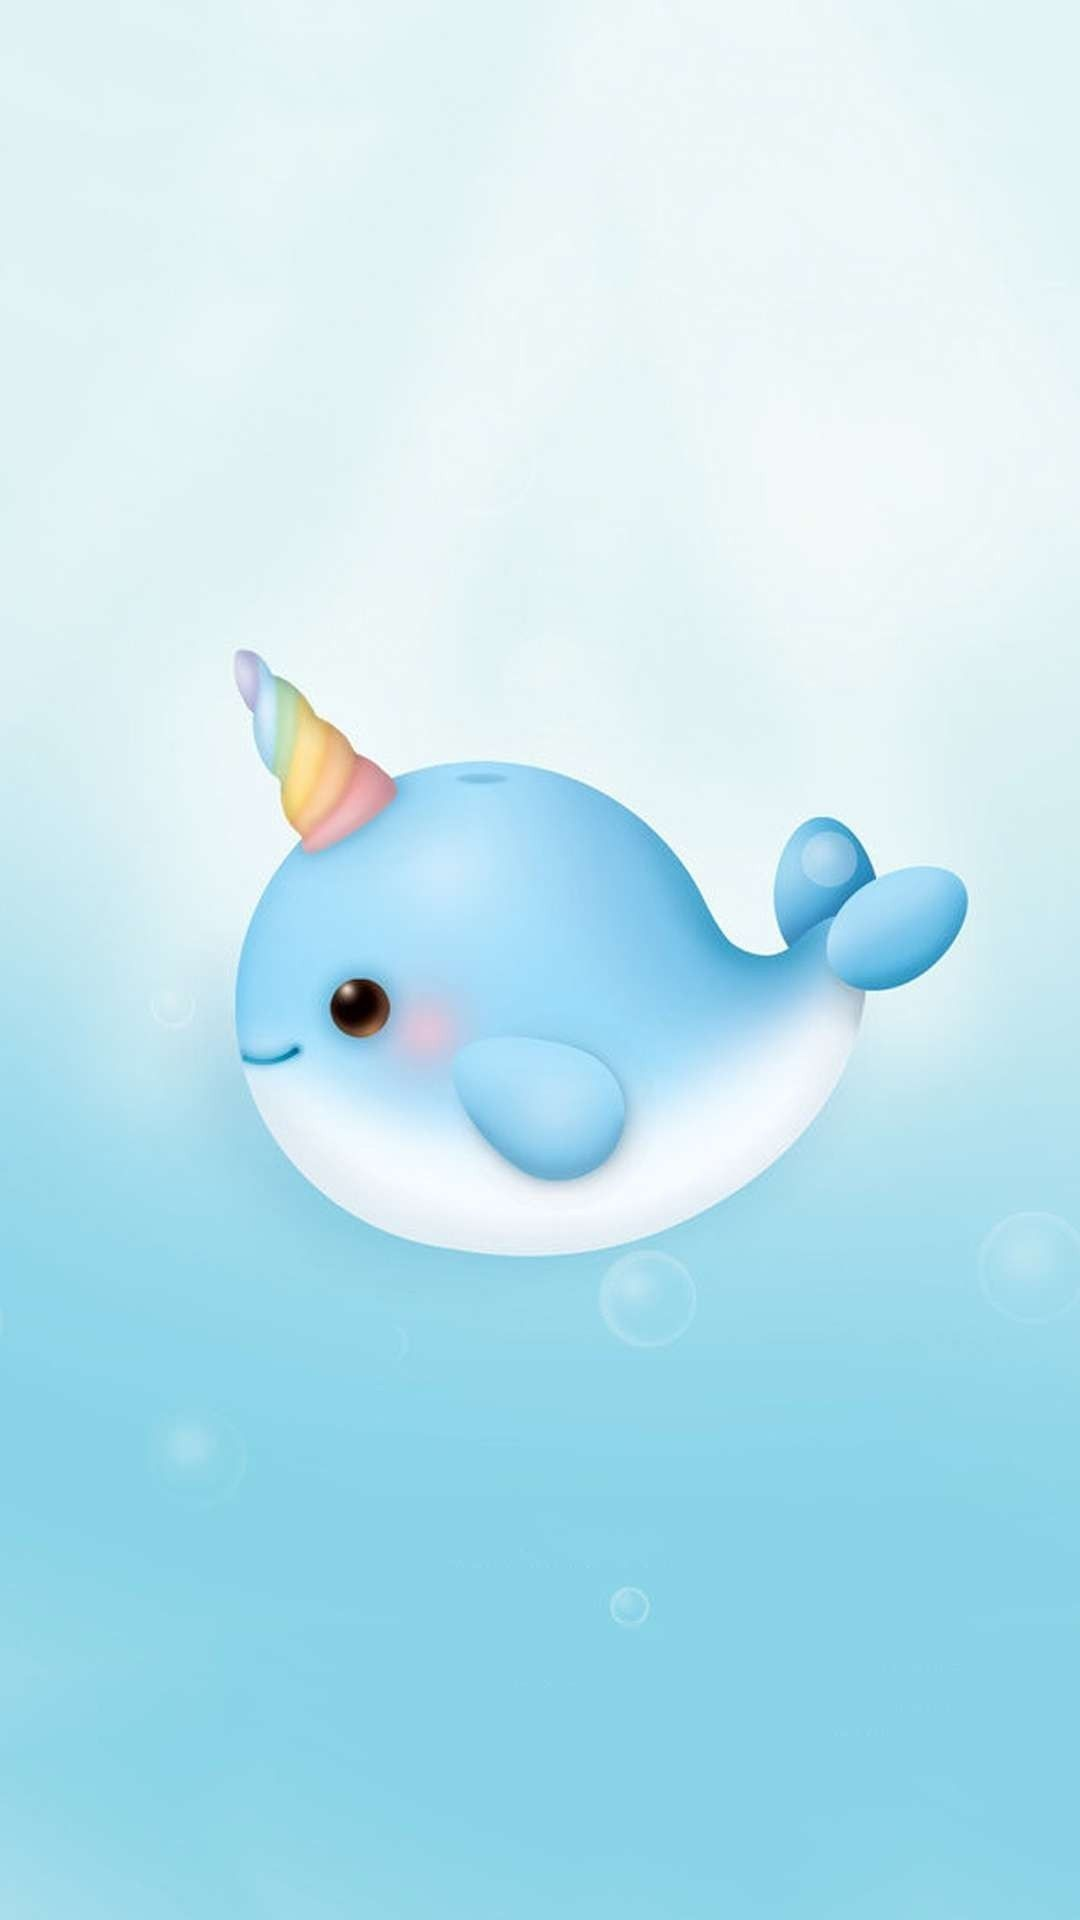 1080x1920  Kawaii Narwhal, Piggy Bank, Wallpaper Backgrounds, Unicorns,  Background Images, Piggy